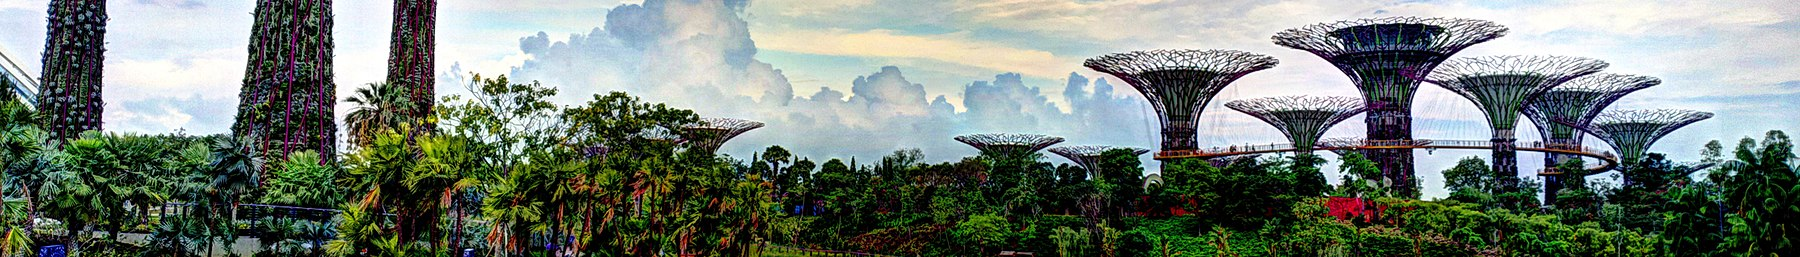 Supertree Grove, Gardens by the Bay, Singapore - 20120704 (banner).jpg